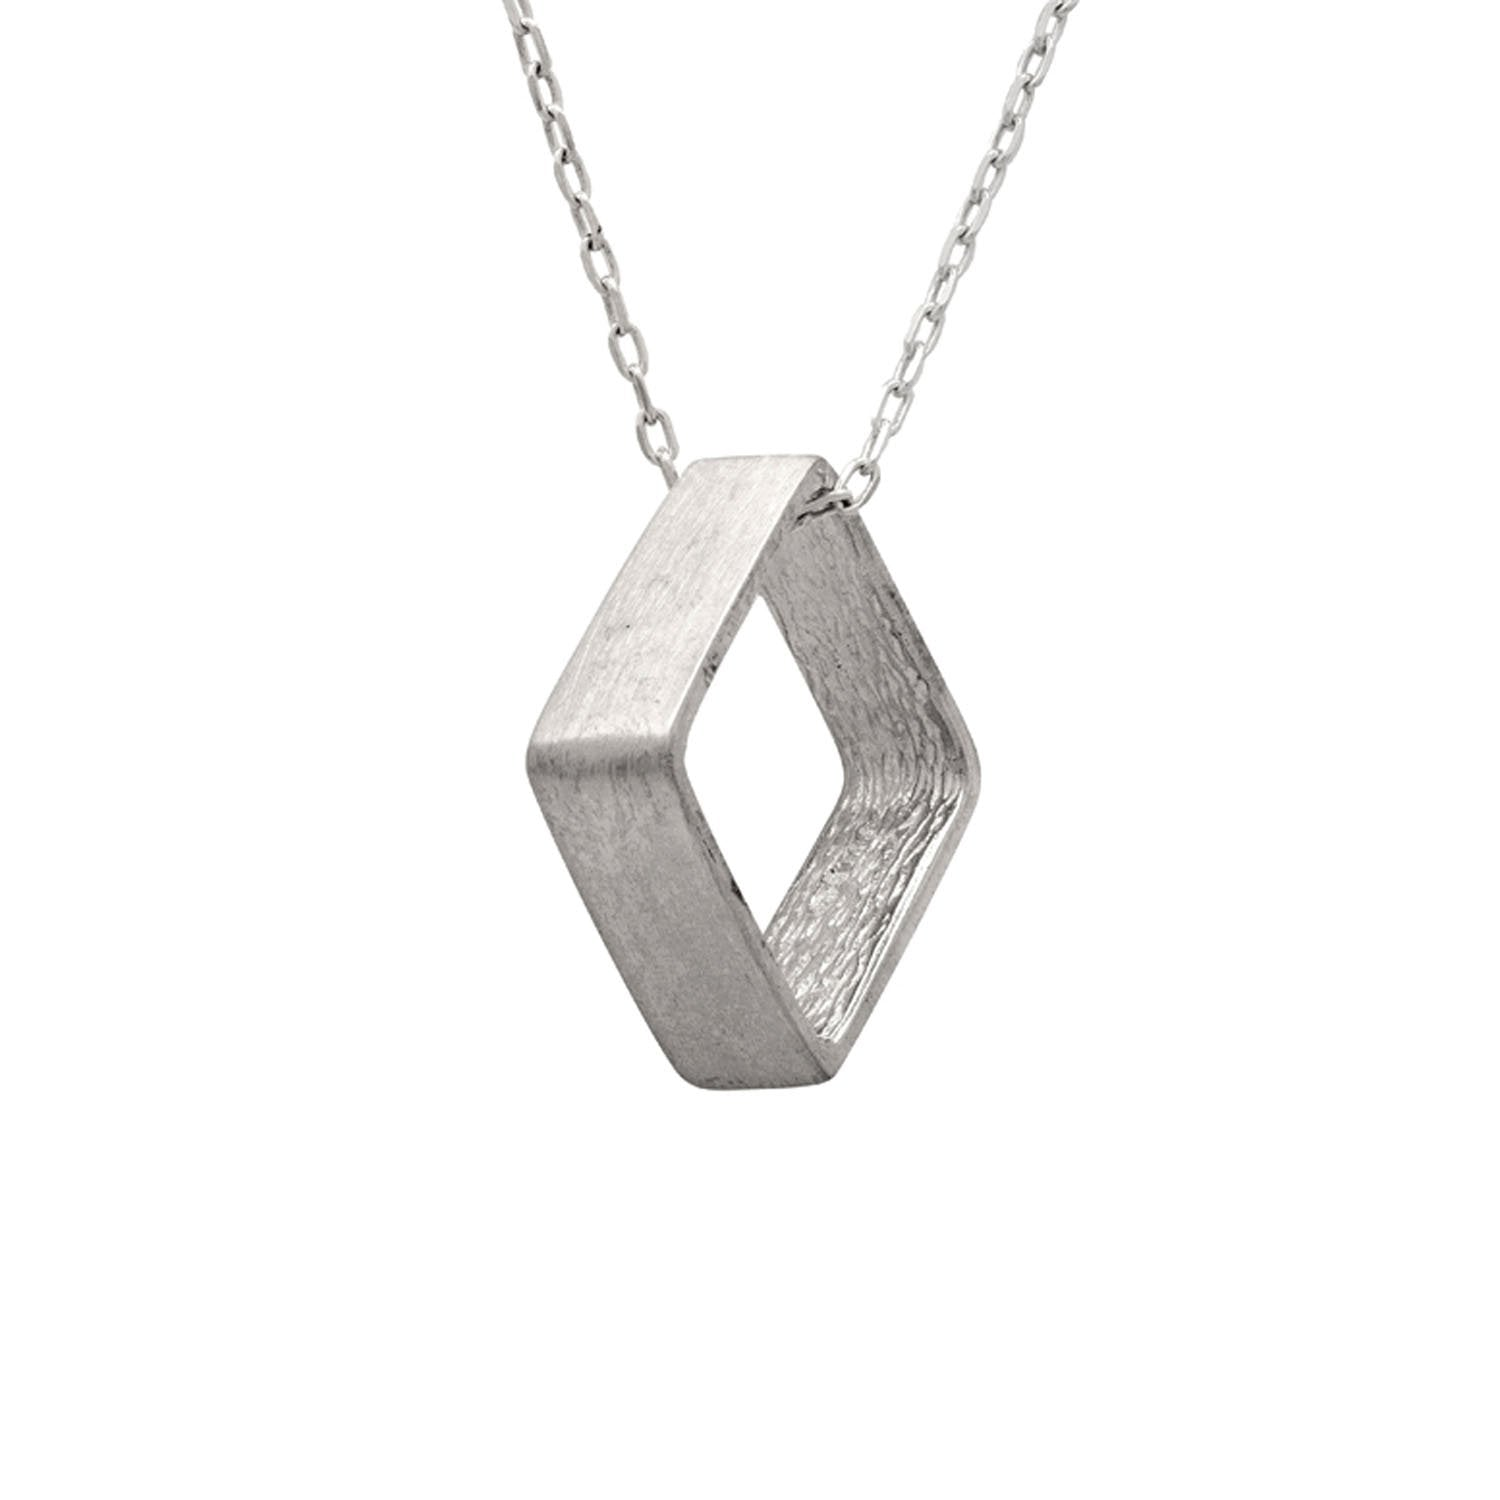 pendant products pavoi necklace interlocking square